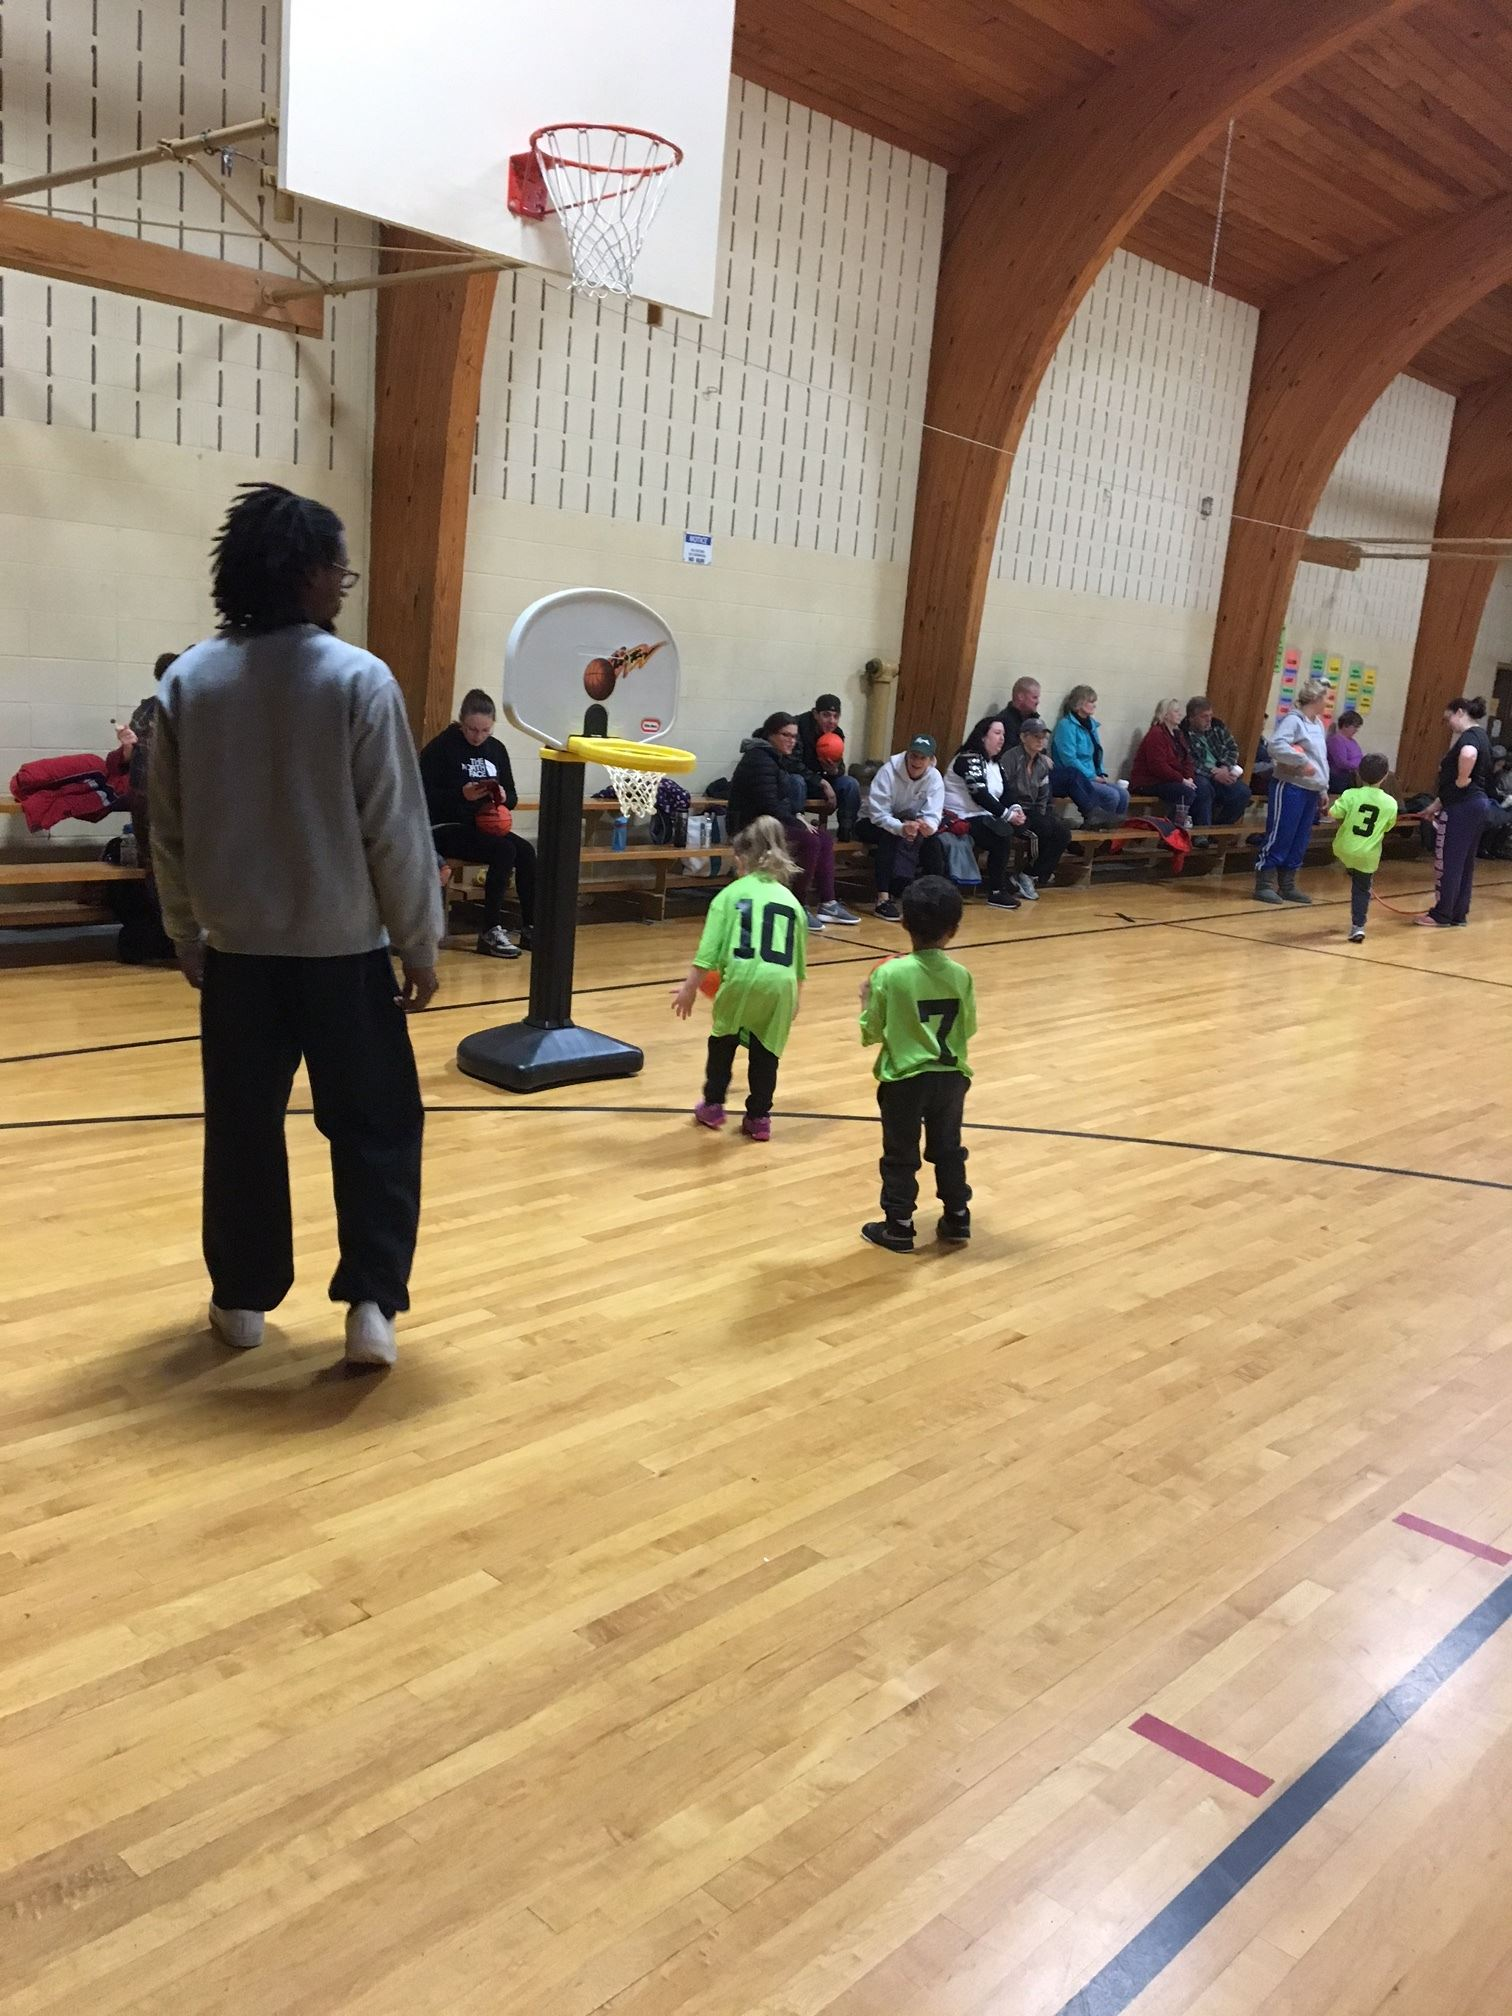 Preschool Parent Child Basketball game with small basketball courts